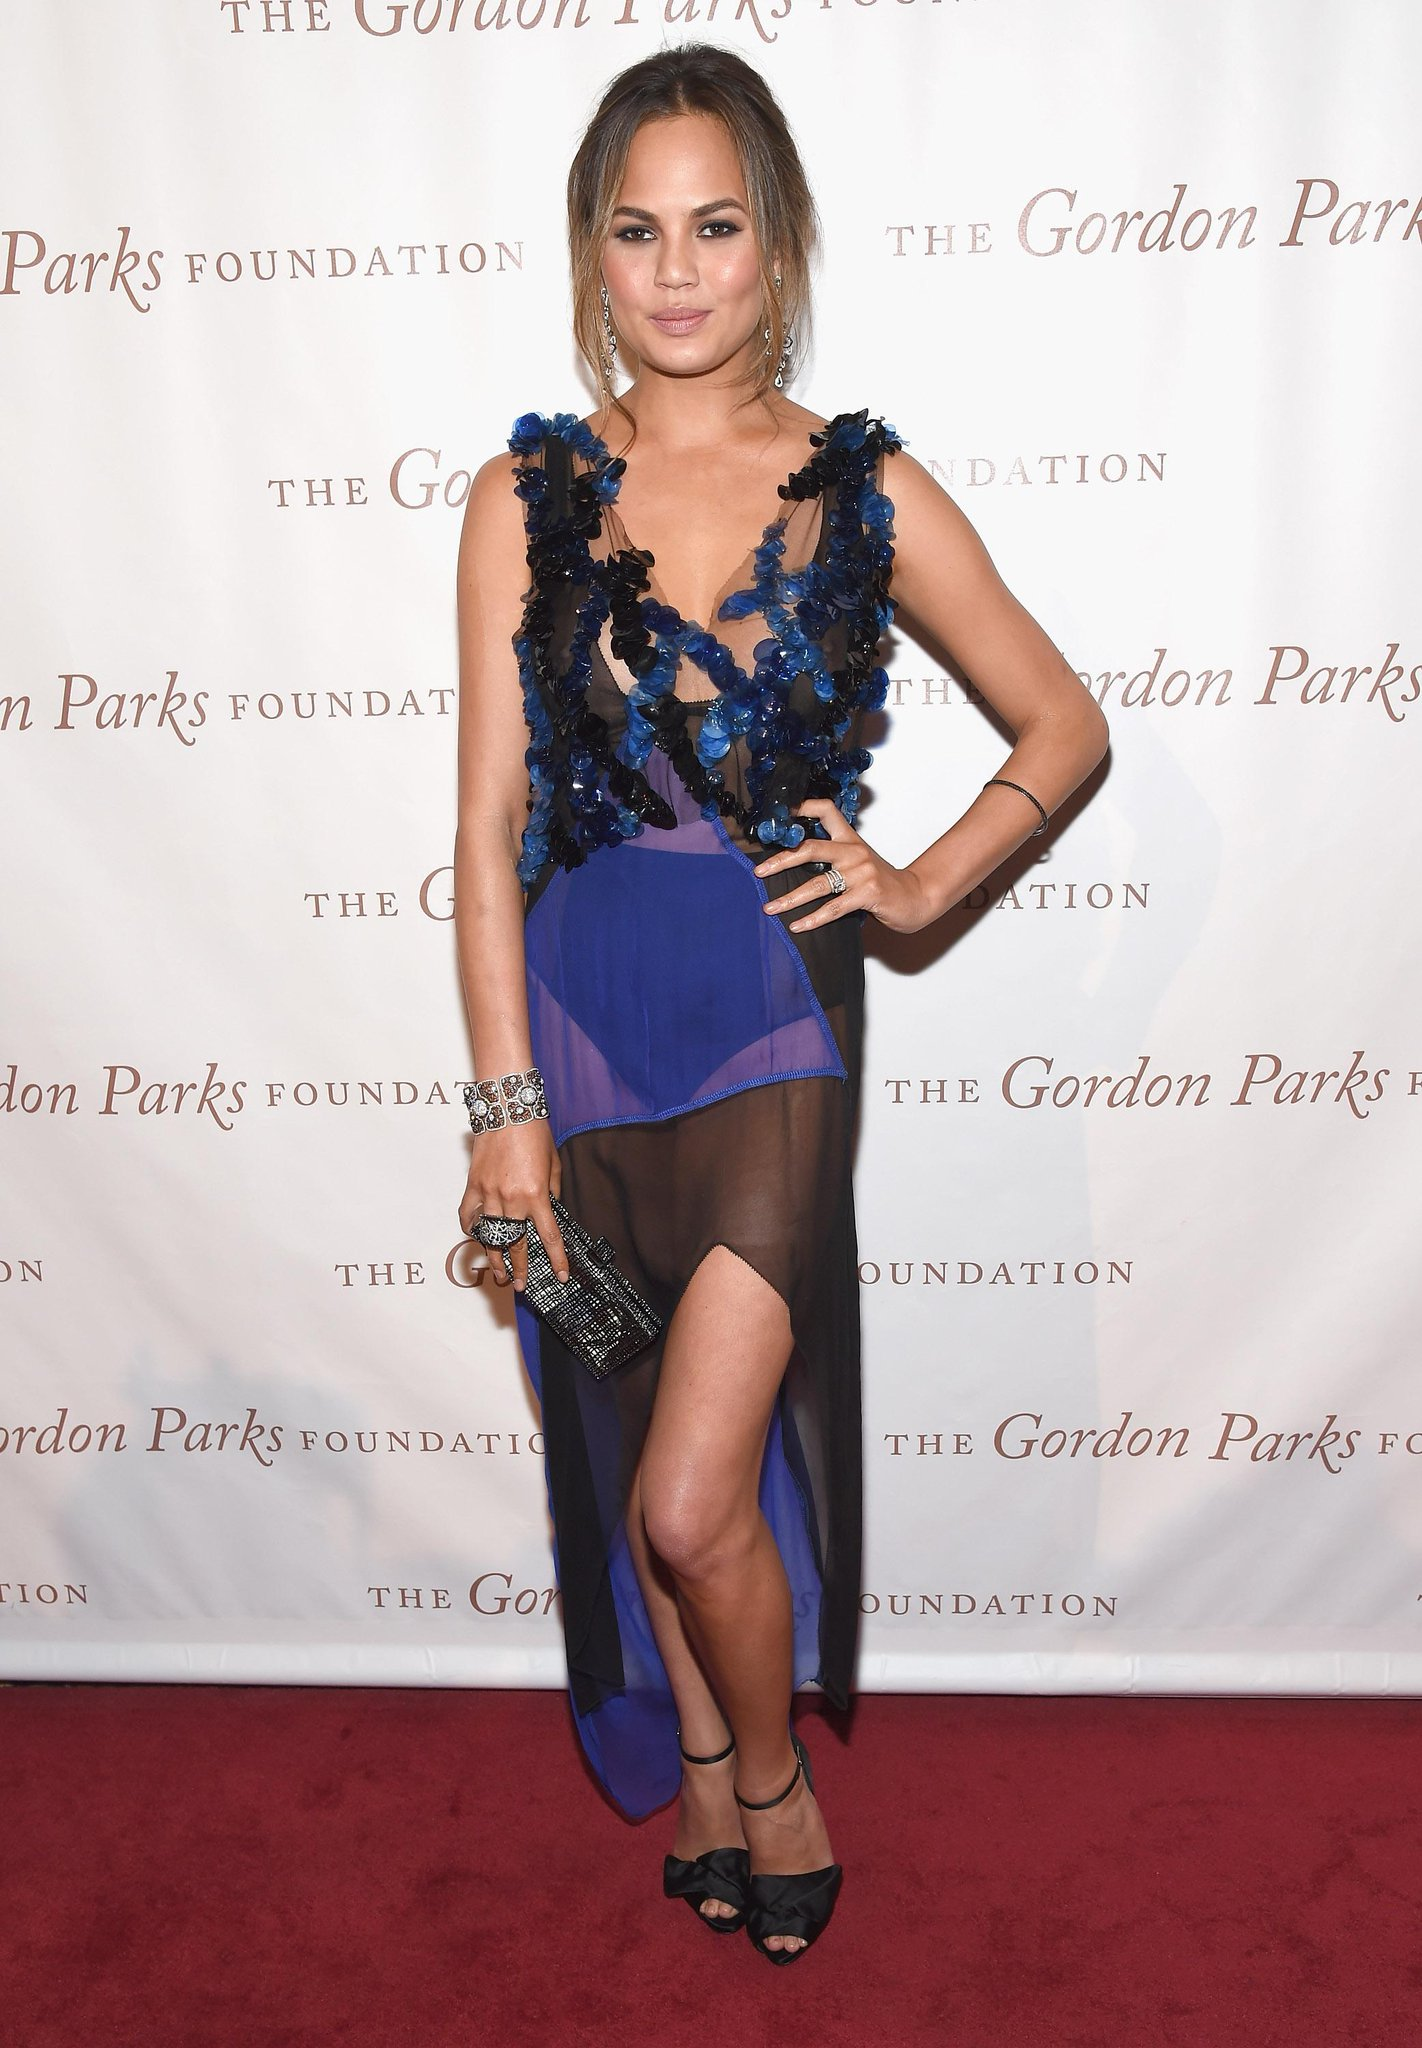 These 9 @ChrissyTeigen looks simply cannot be beat: http://t.co/bBwamQYwBh http://t.co/qo45tNSFtC